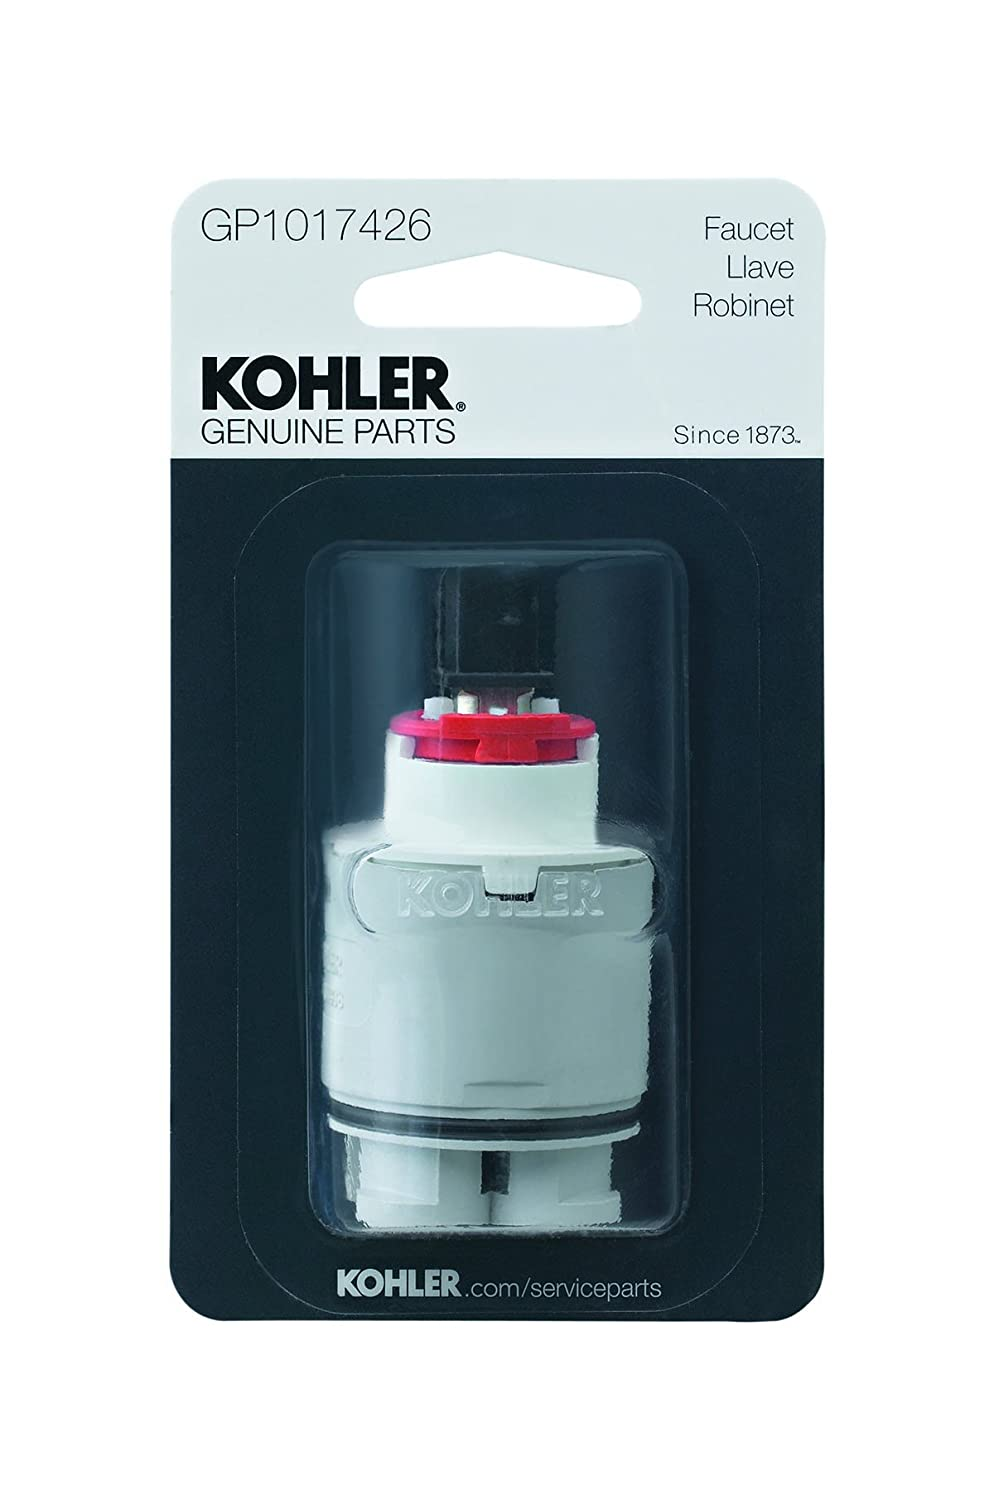 KOHLER GENUINE PART GP1017426 VALVE - Faucet And Valve Washers ...